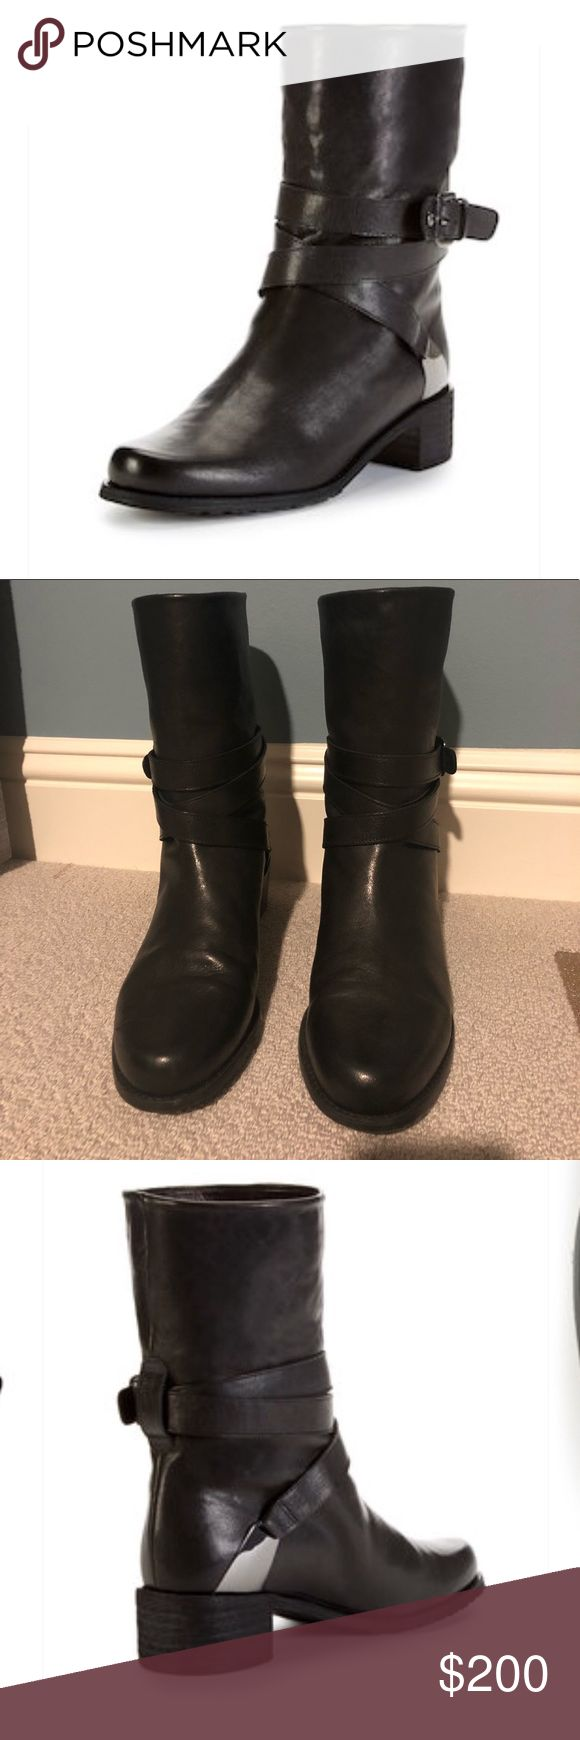 Stuart Weitzman Ranch Dress Moto Boot 1.75 inch heel height. There are some signs of wear as shown in pictures. Some small marks on leather and scratches on the metal hardware. When I bought, there was only 9.5 left and I though oh wear thick socks! Never fit right since I am a size 9. Moral of the story is they are true to size and if anyone wants to trade for a 9 I am interested! Does not include box or dust bag. Stuart Weitzman Shoes Combat & Moto Boots